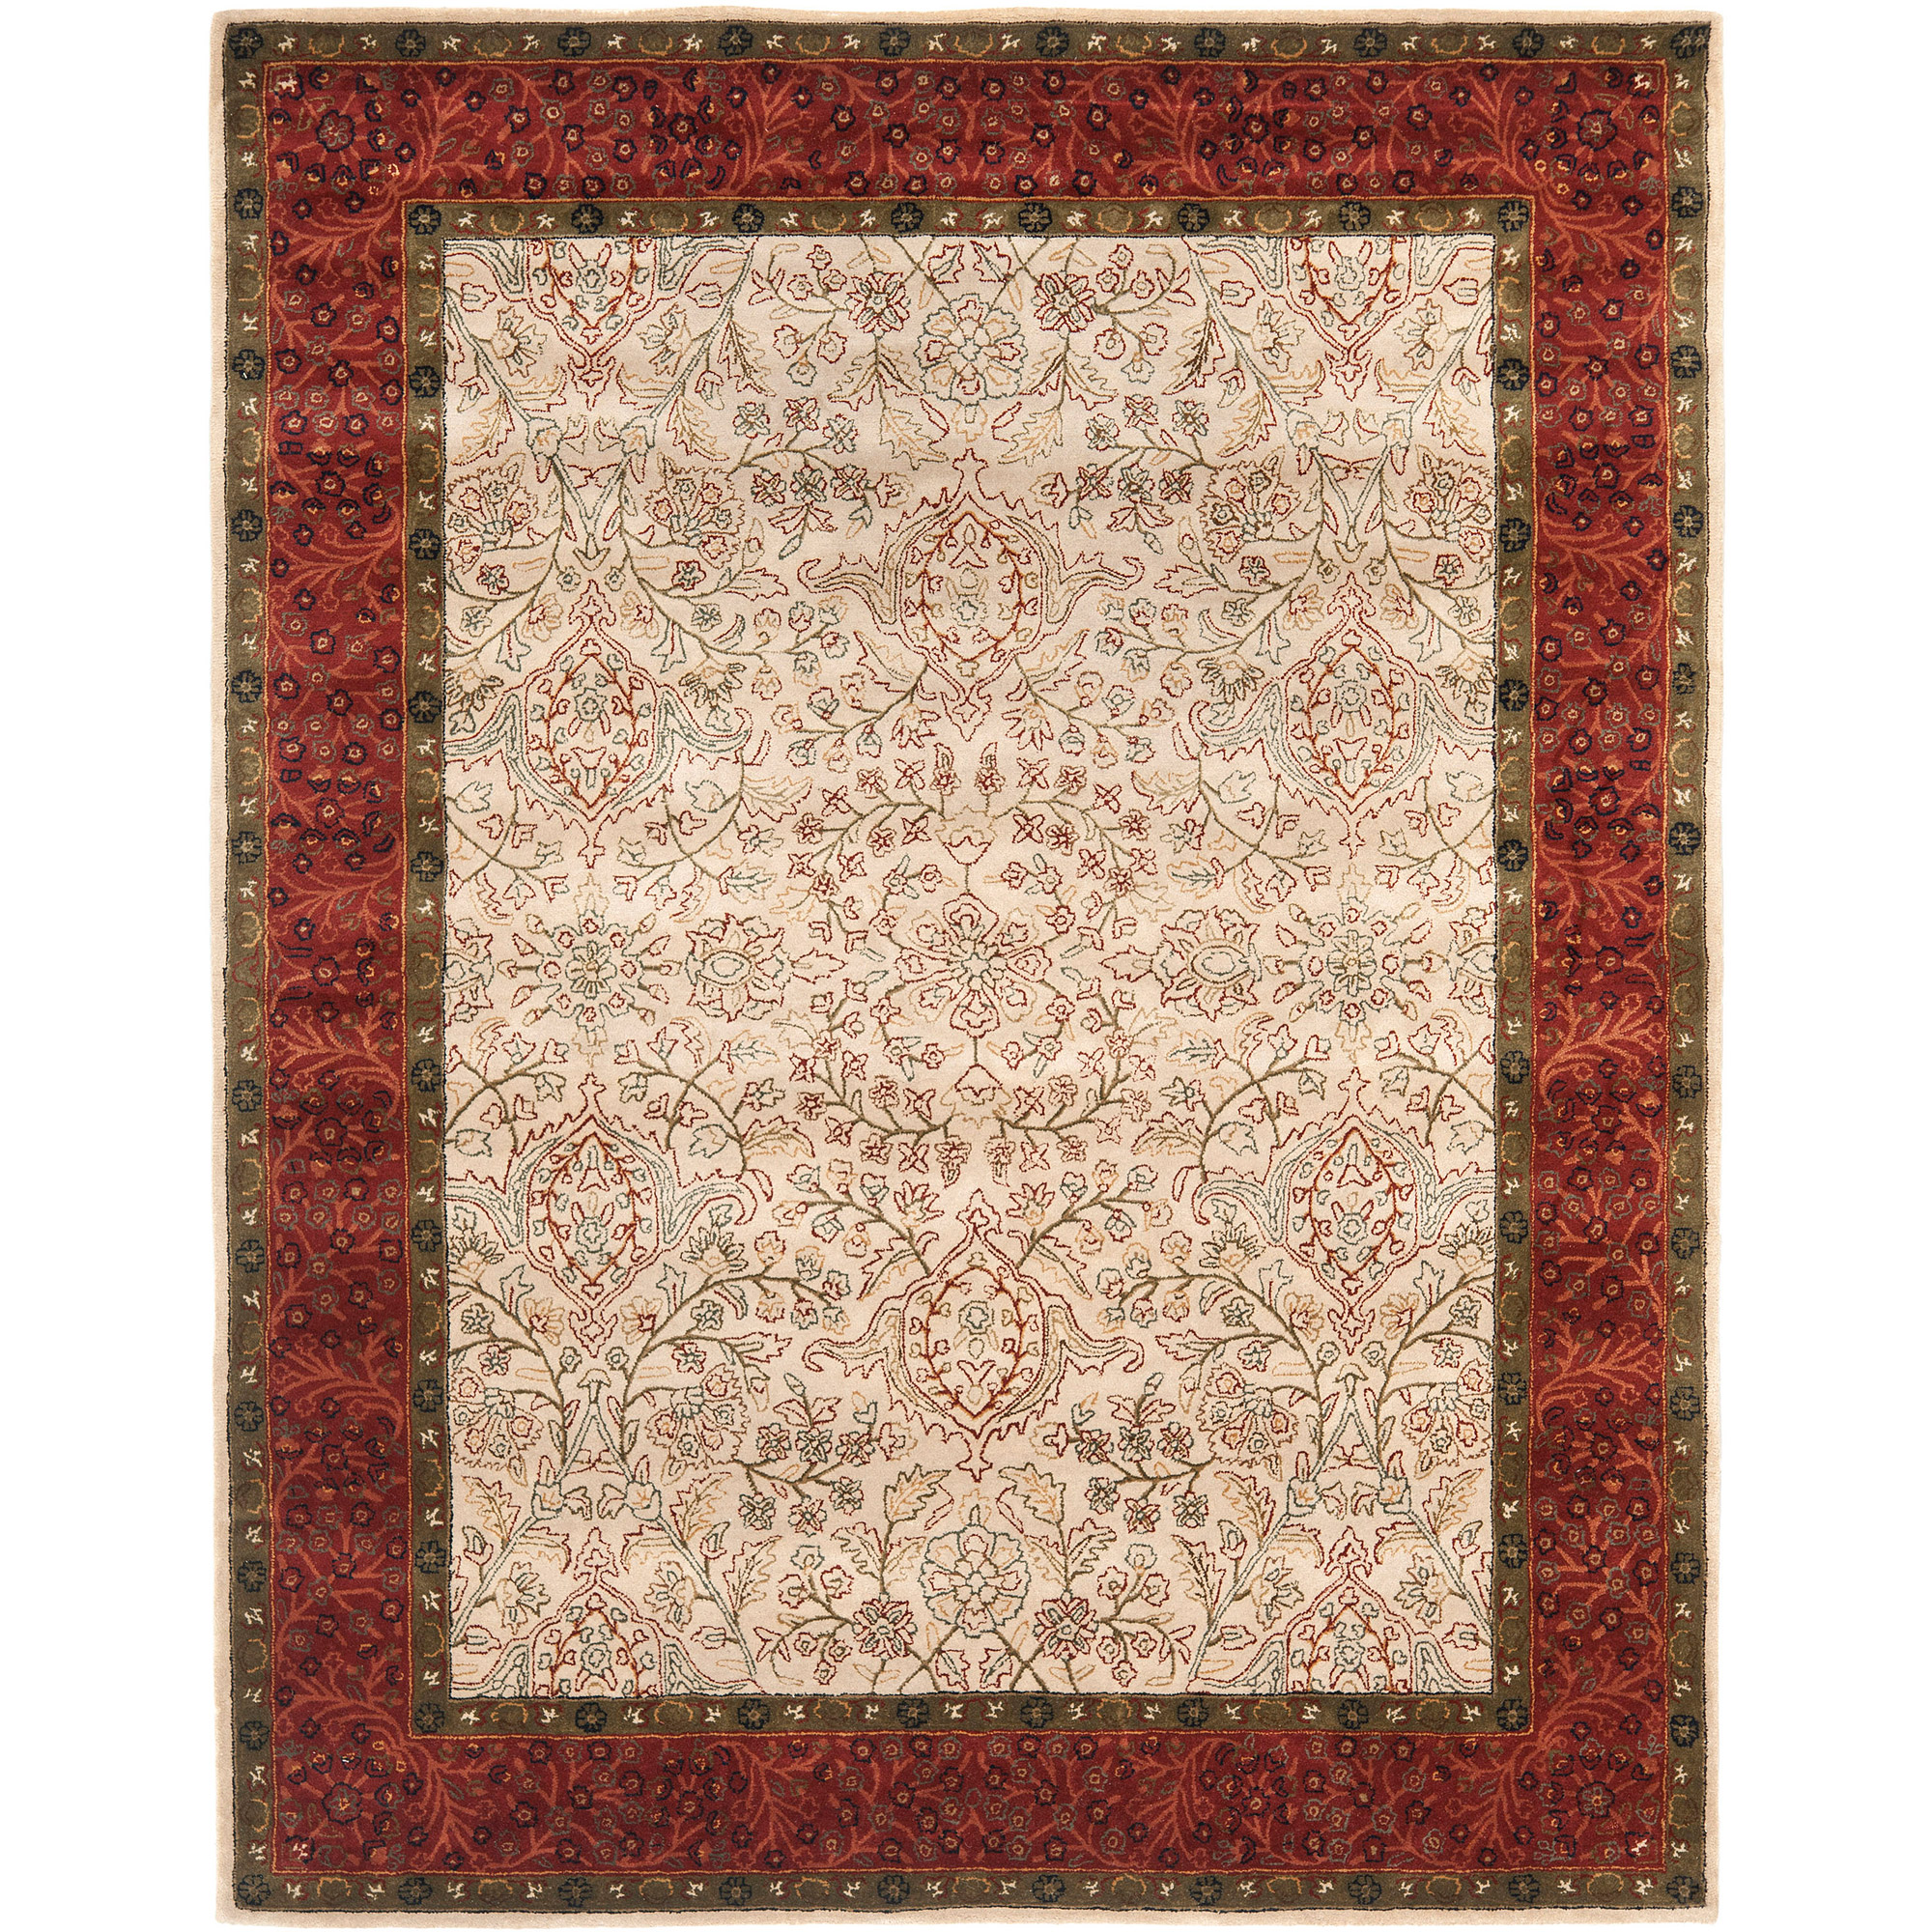 Safavieh Persian Legend Leandre Hand-Tufted New Zealand Wool Area Rug, Ivory/Rust